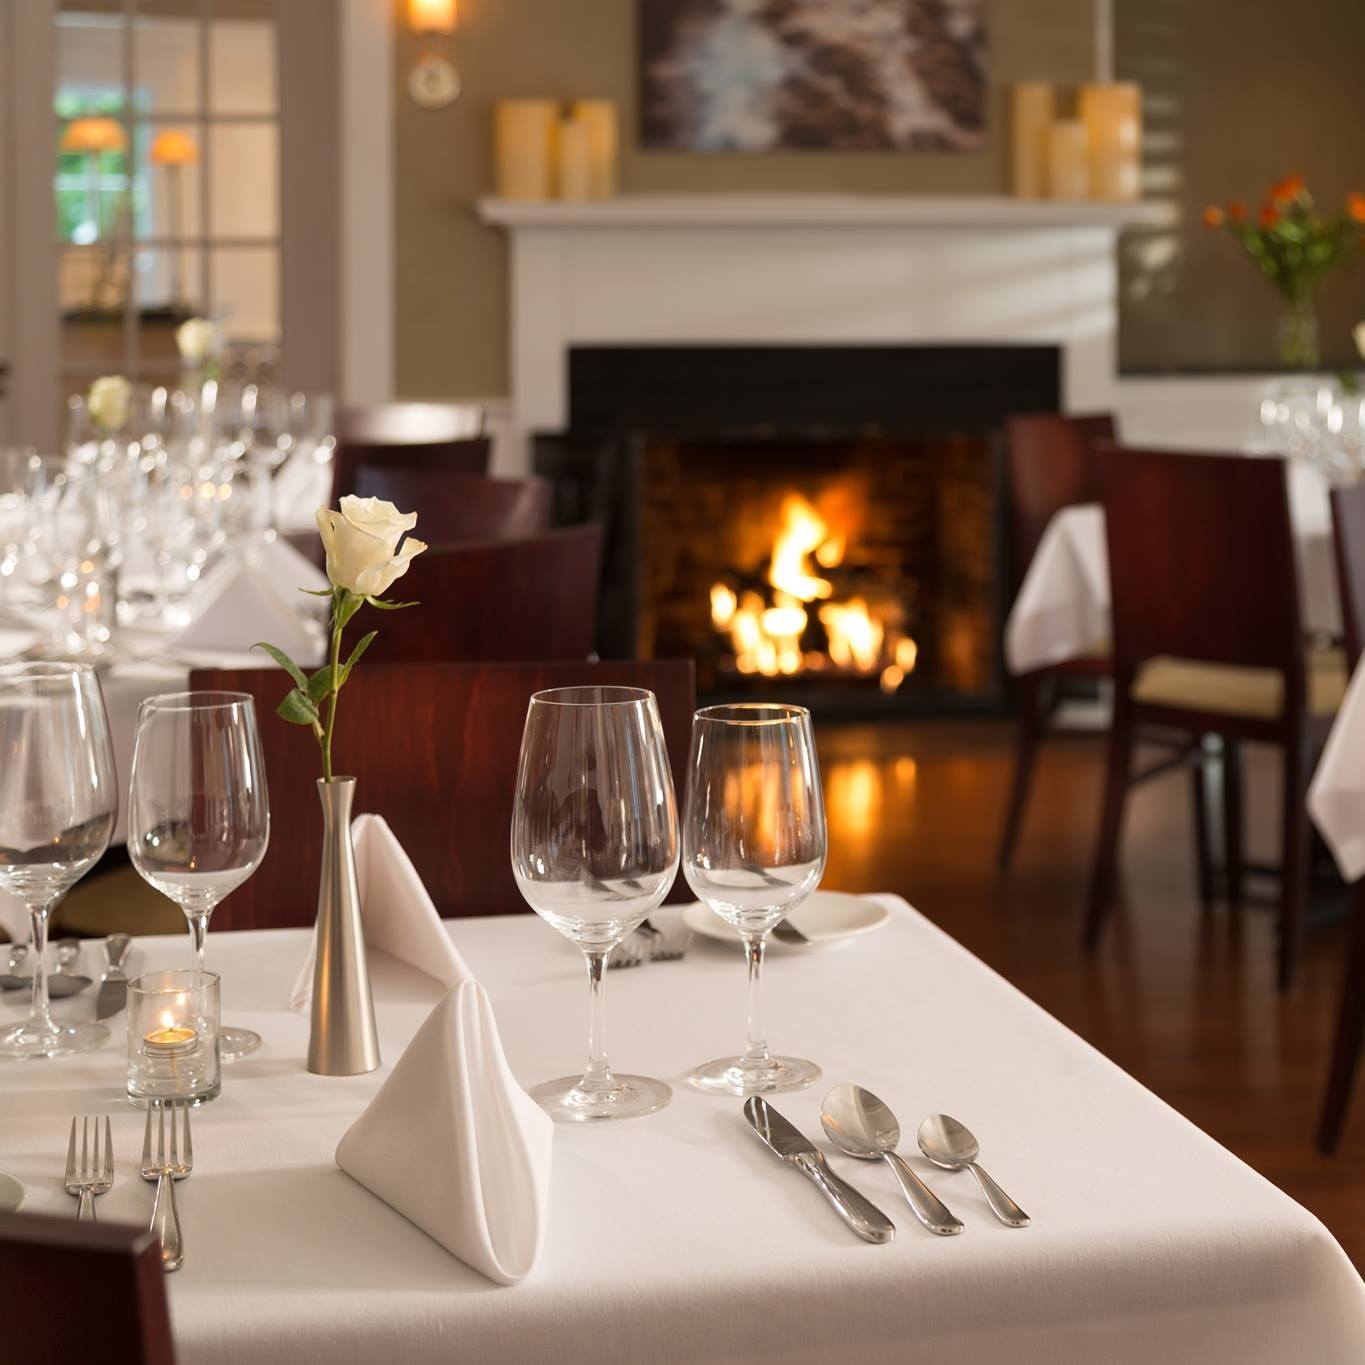 The Chatham Inn wins hearts on the Cape